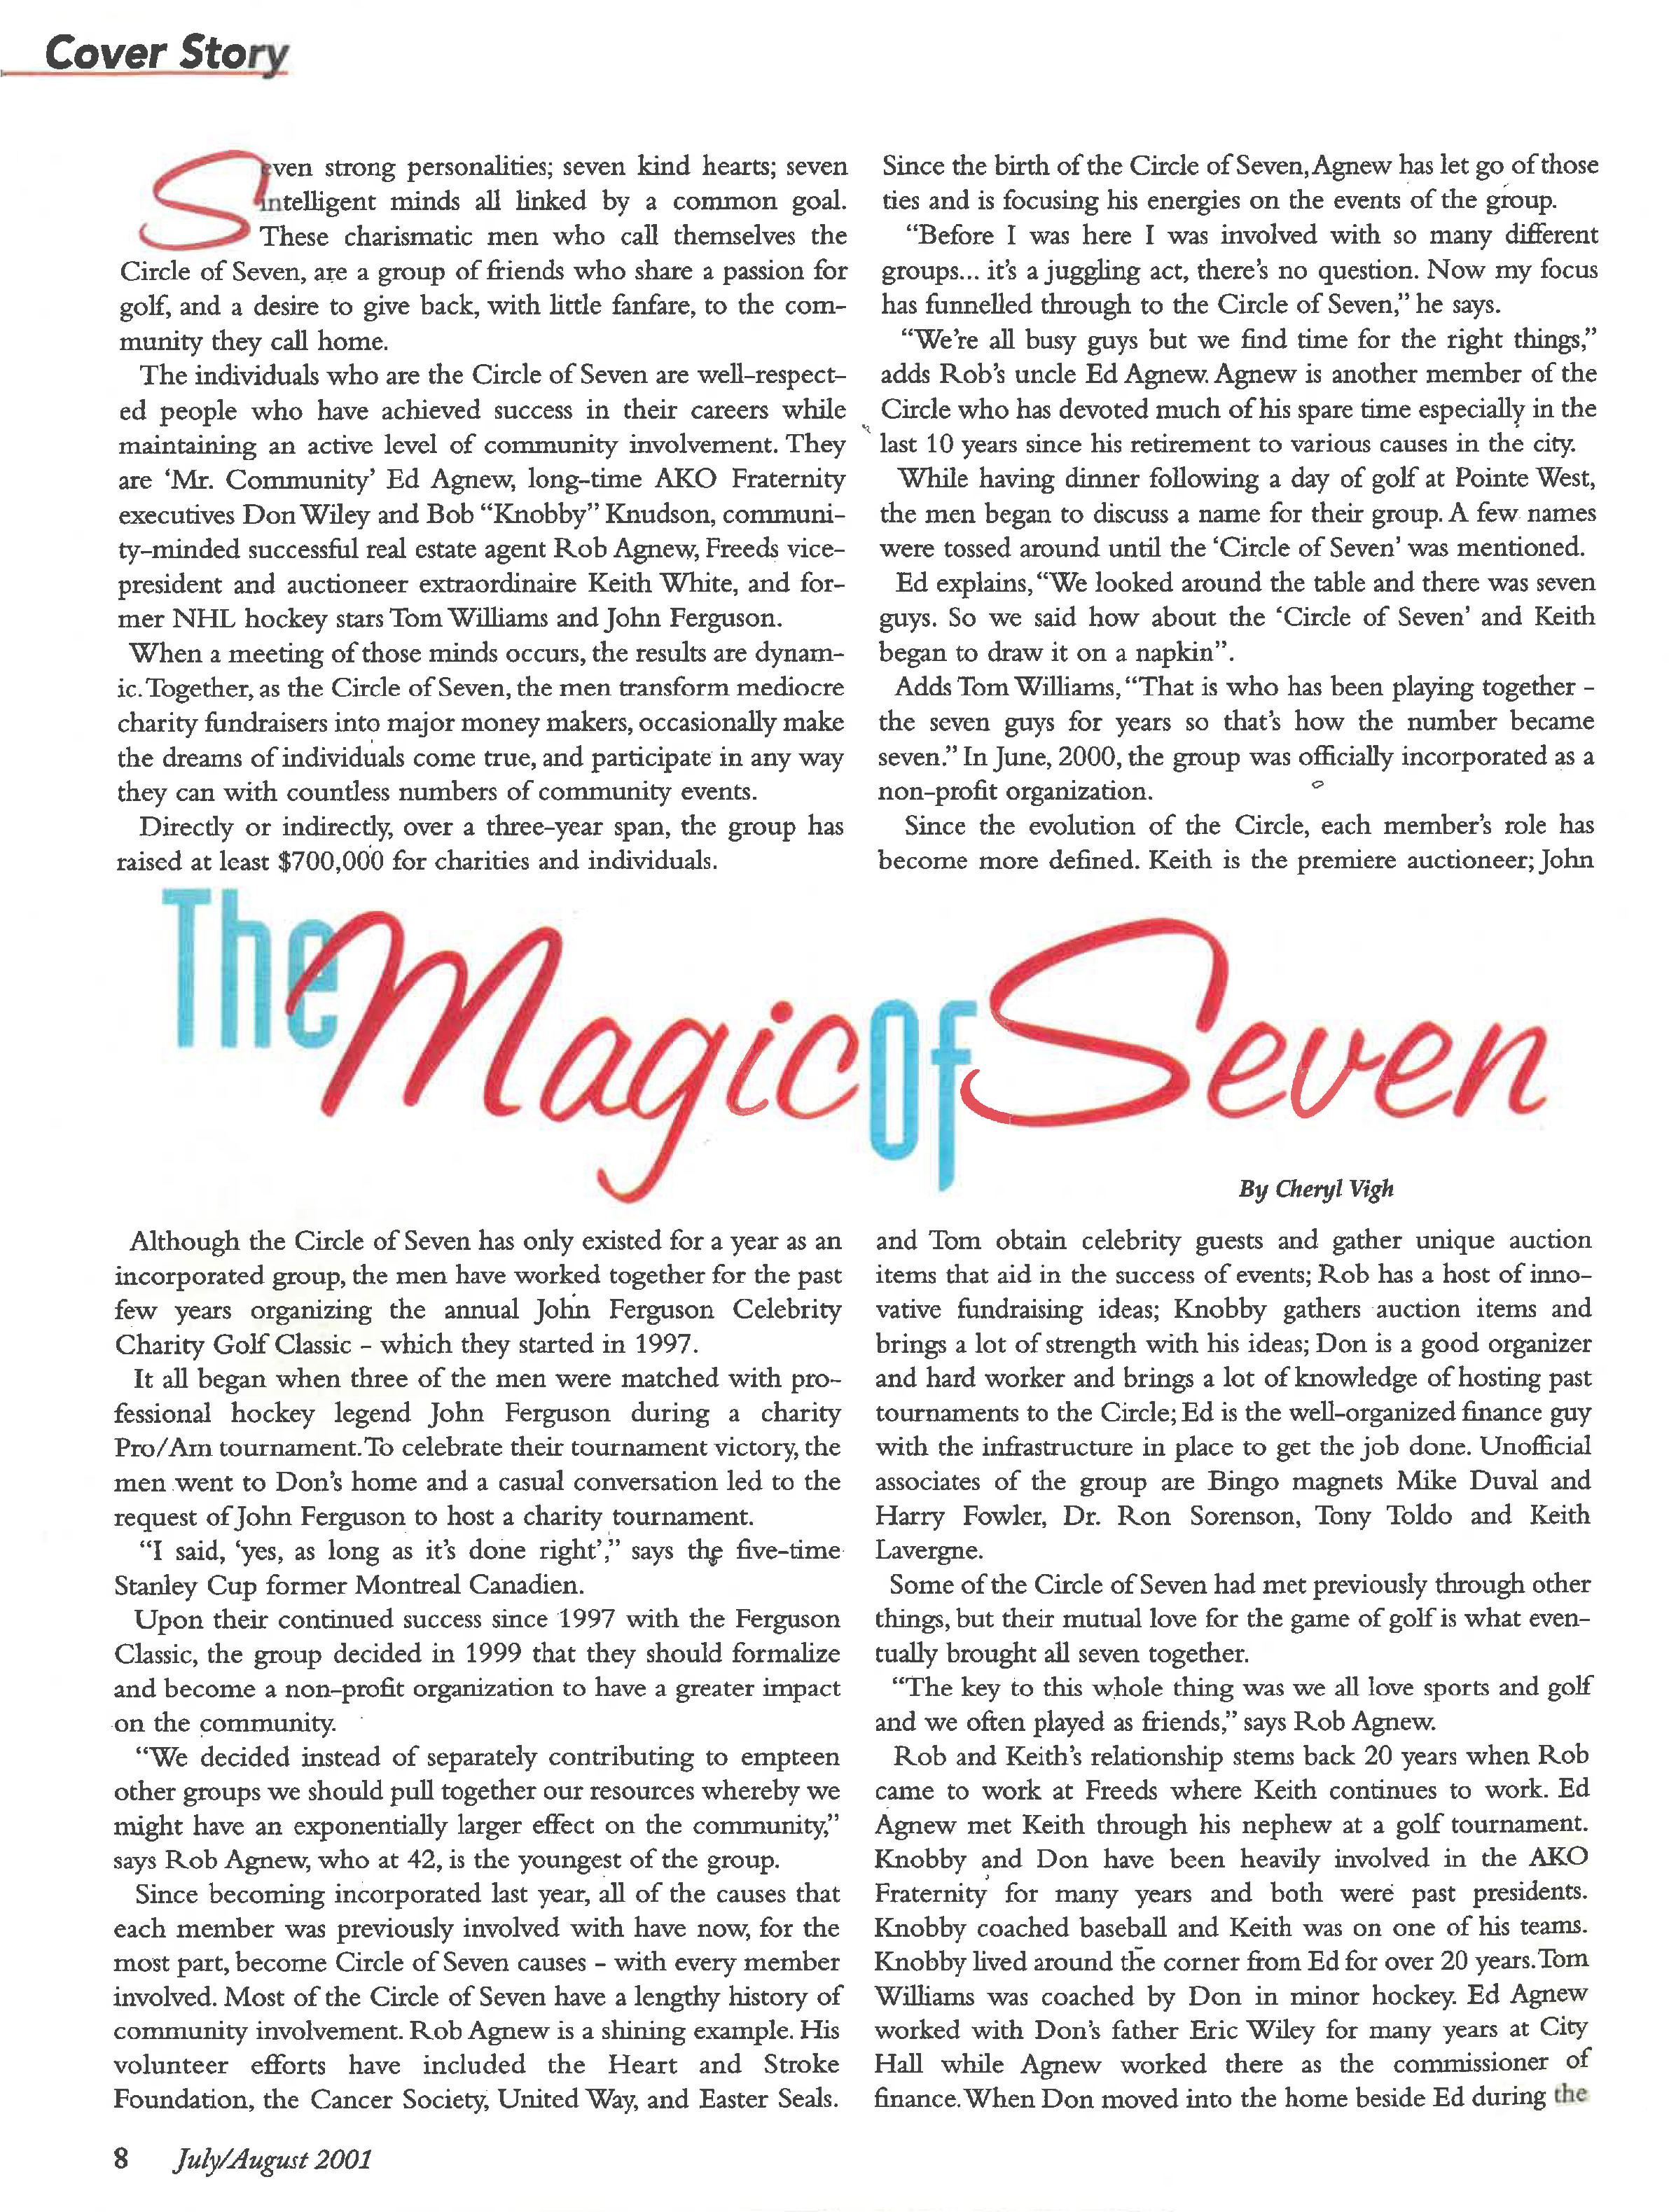 The magic of Seven article Into